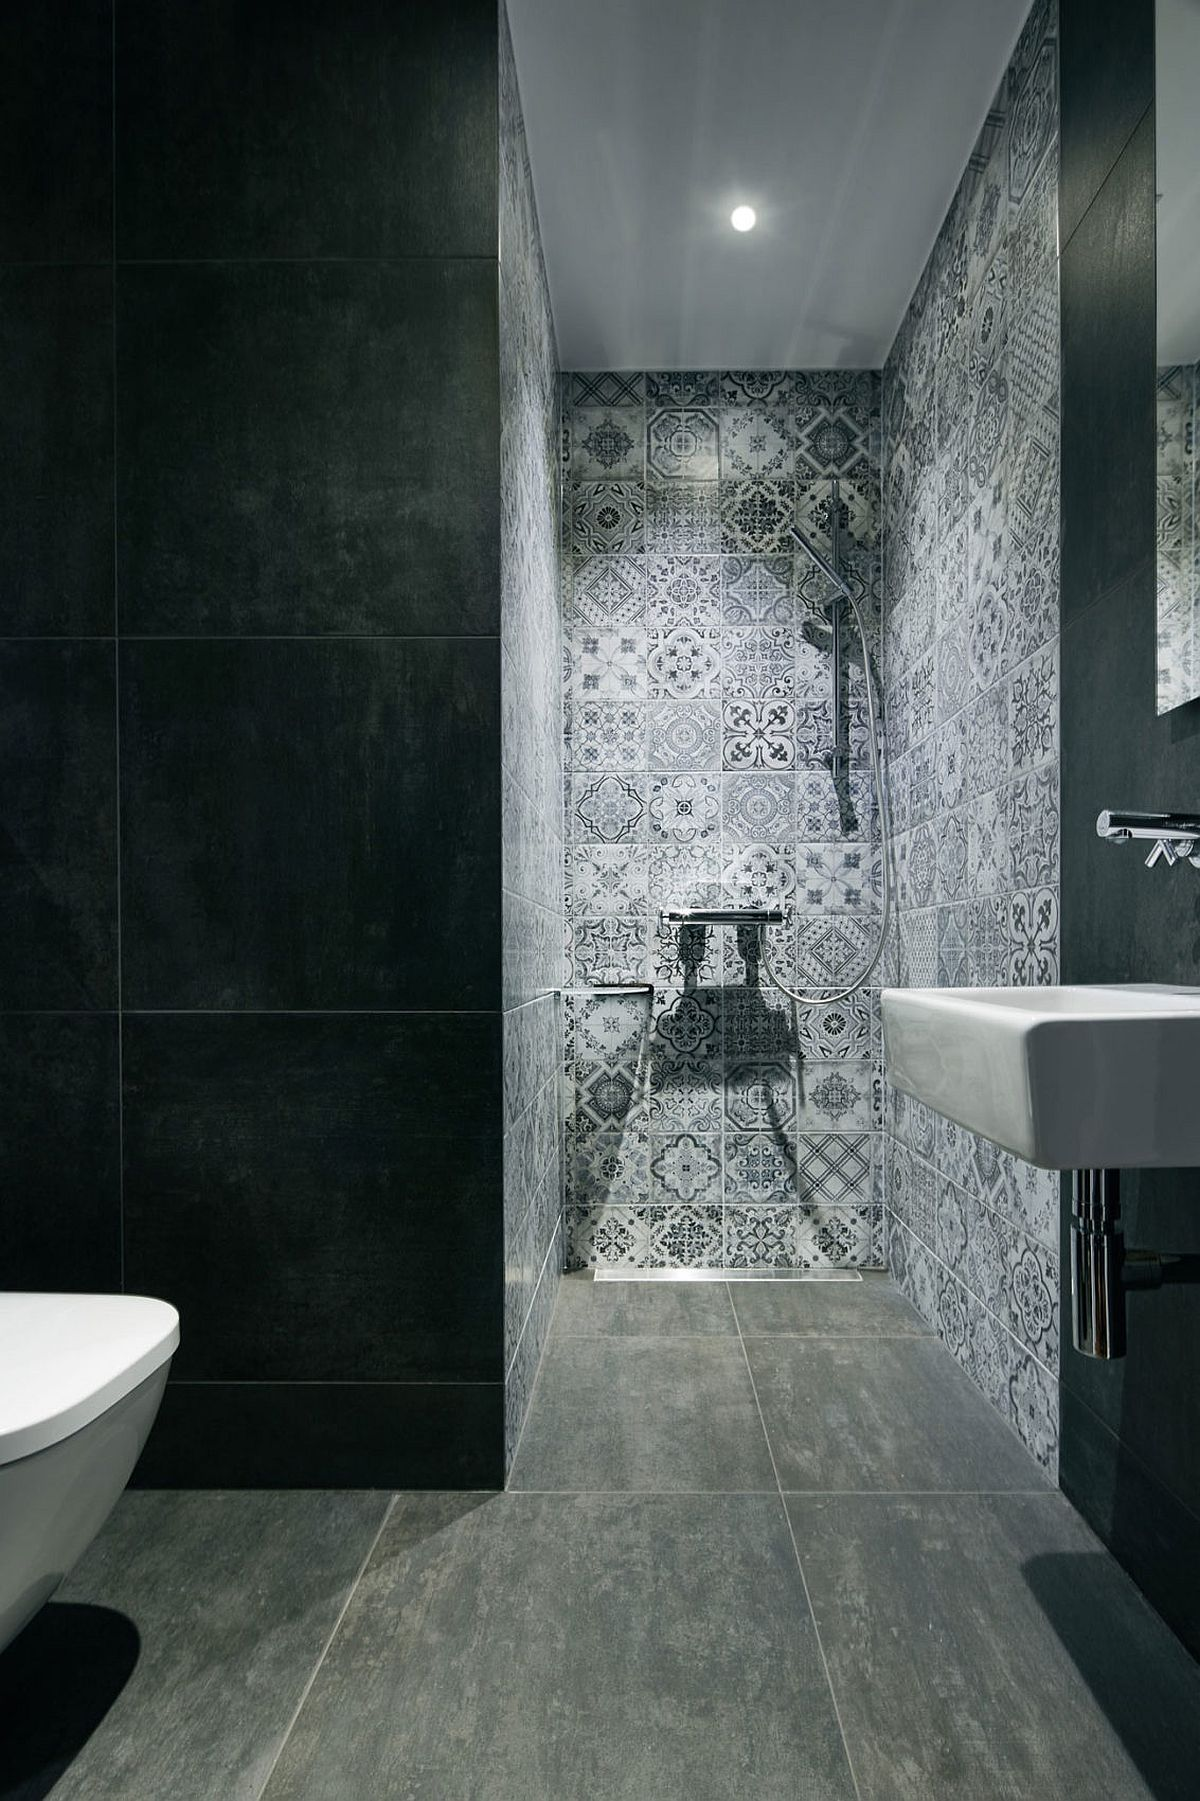 Bathroom in gray with patterened tiles